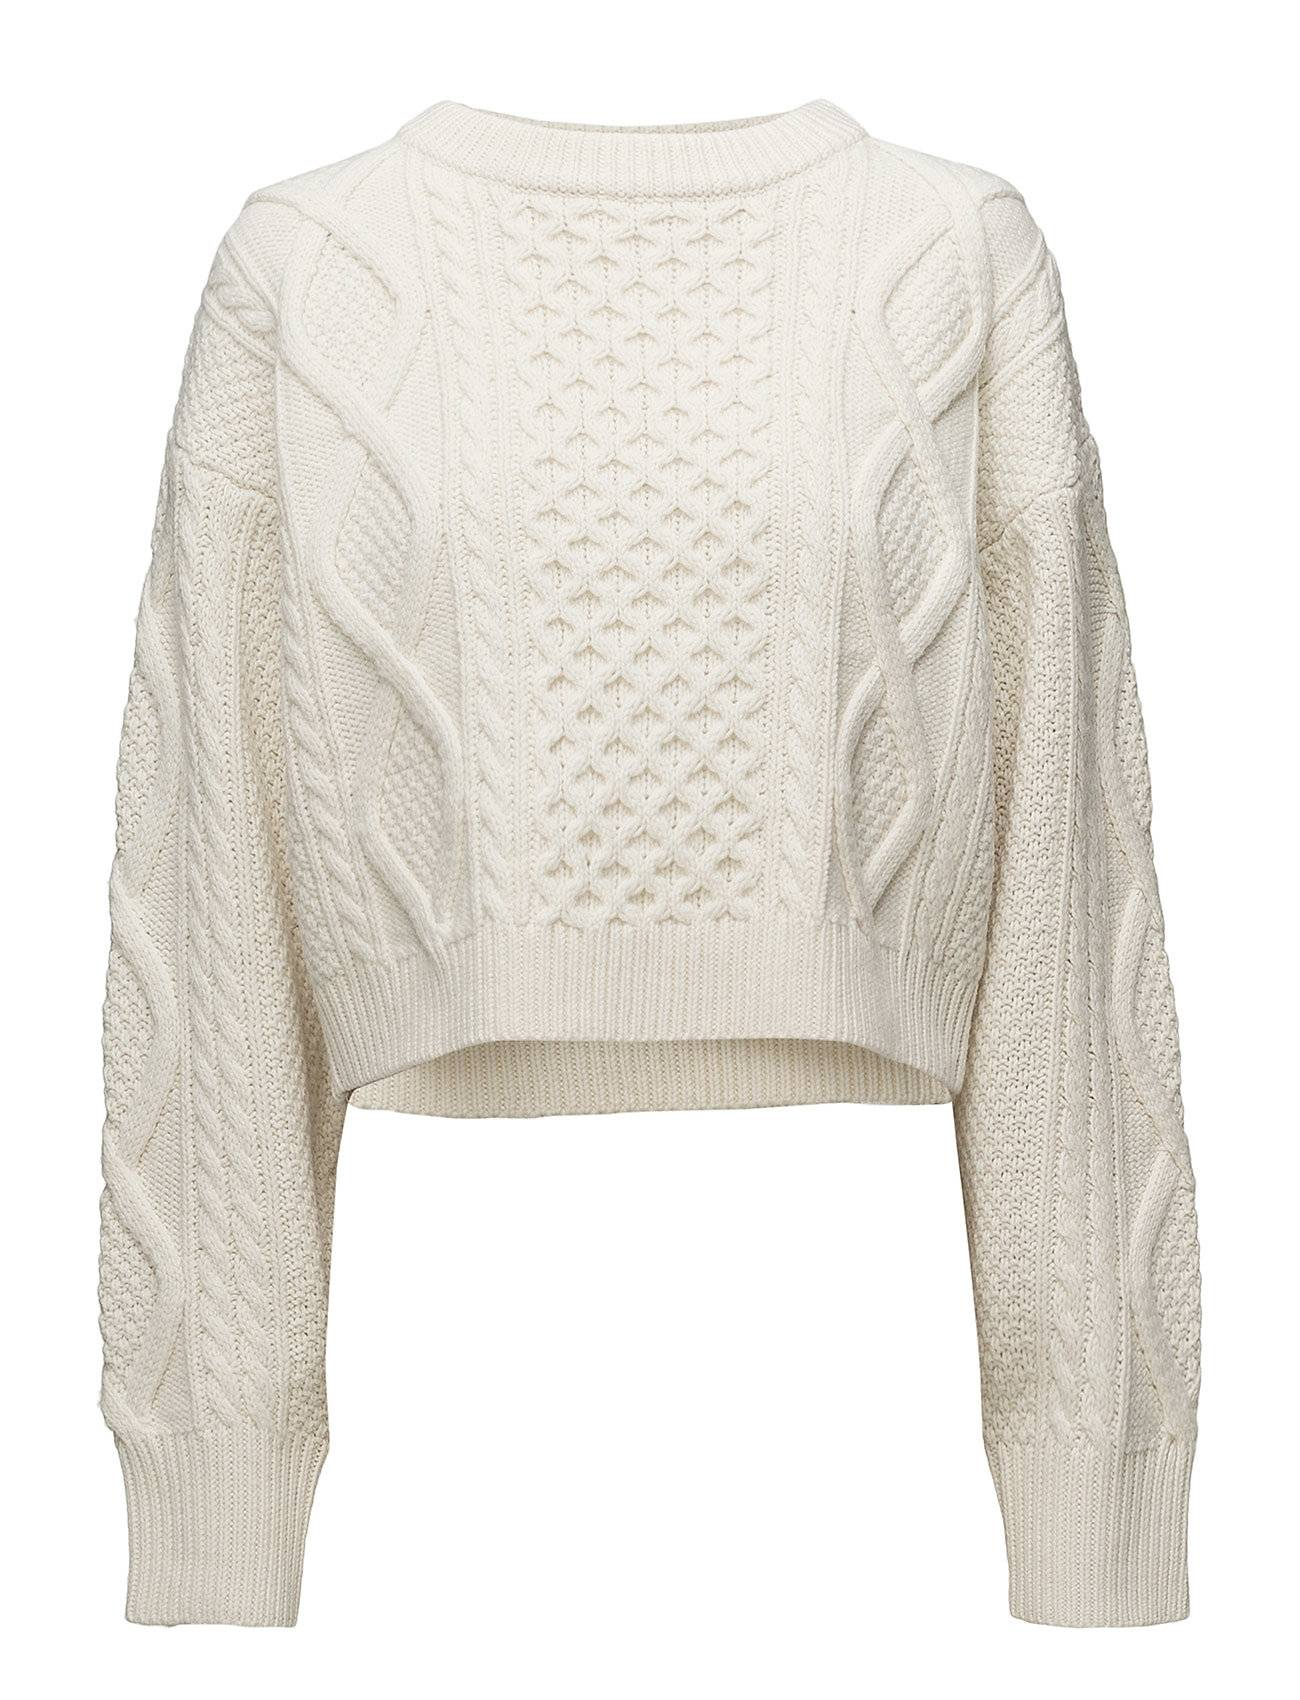 3.1 Phillip Lim Ls Cropped Boxy Aran Cable Sweater